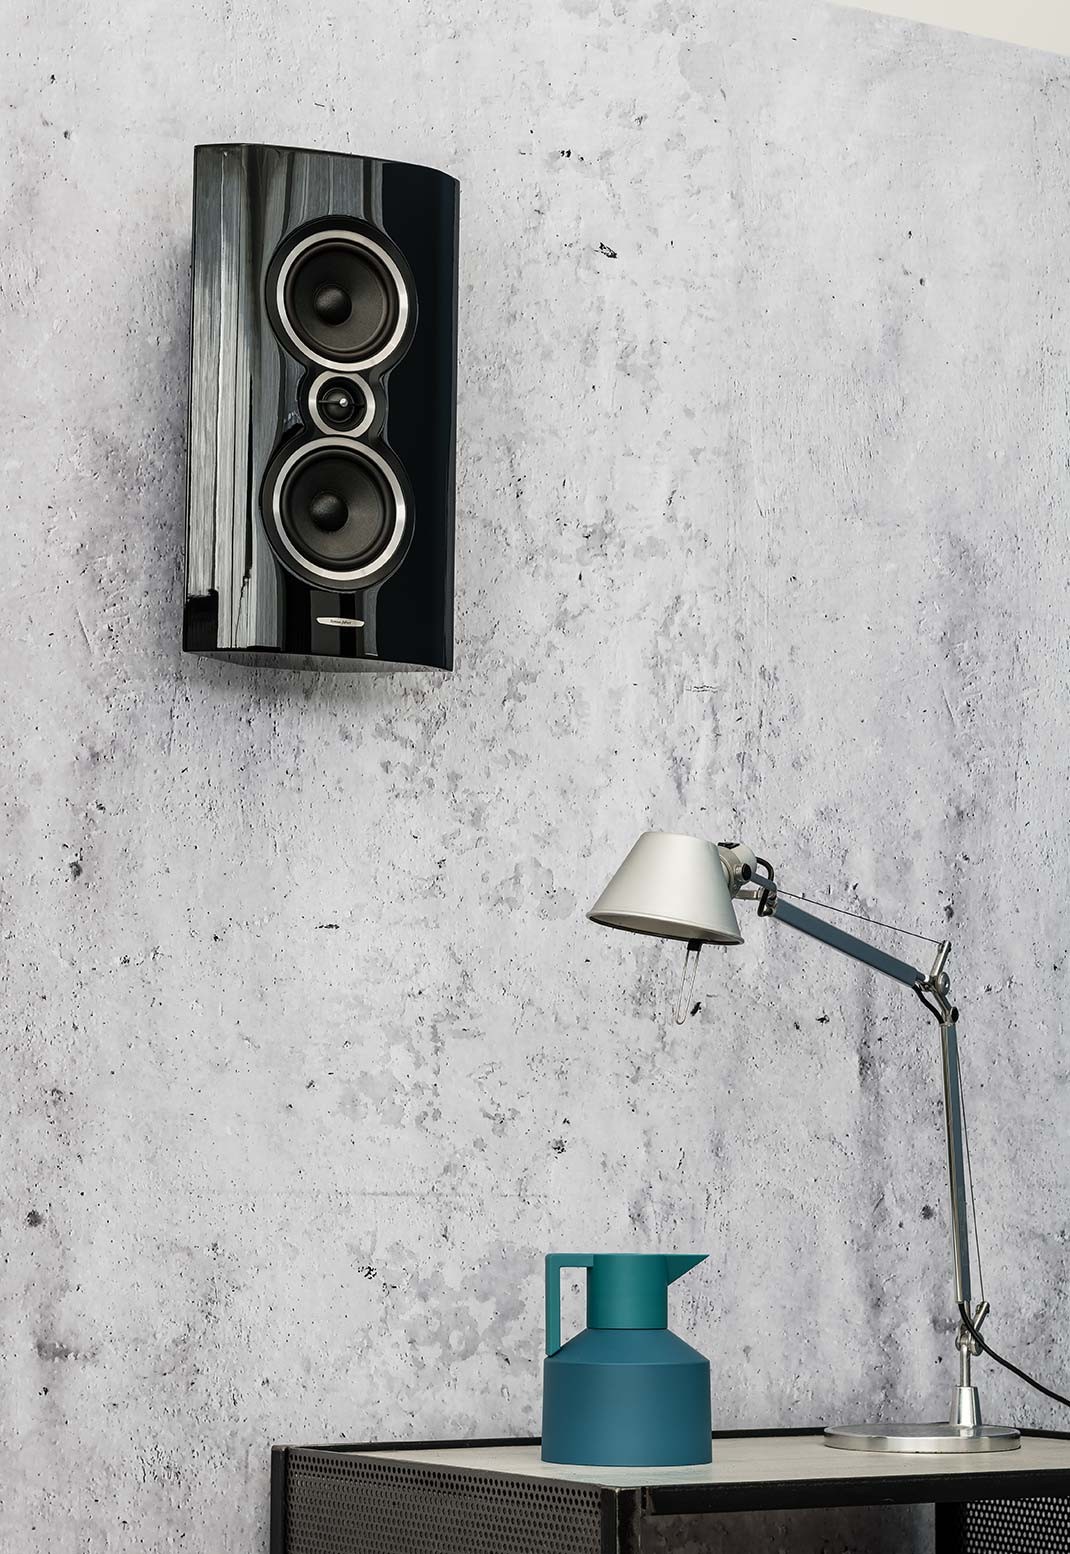 Sonetto Speaker Collection From Sonus Faber - The Audiophile Man